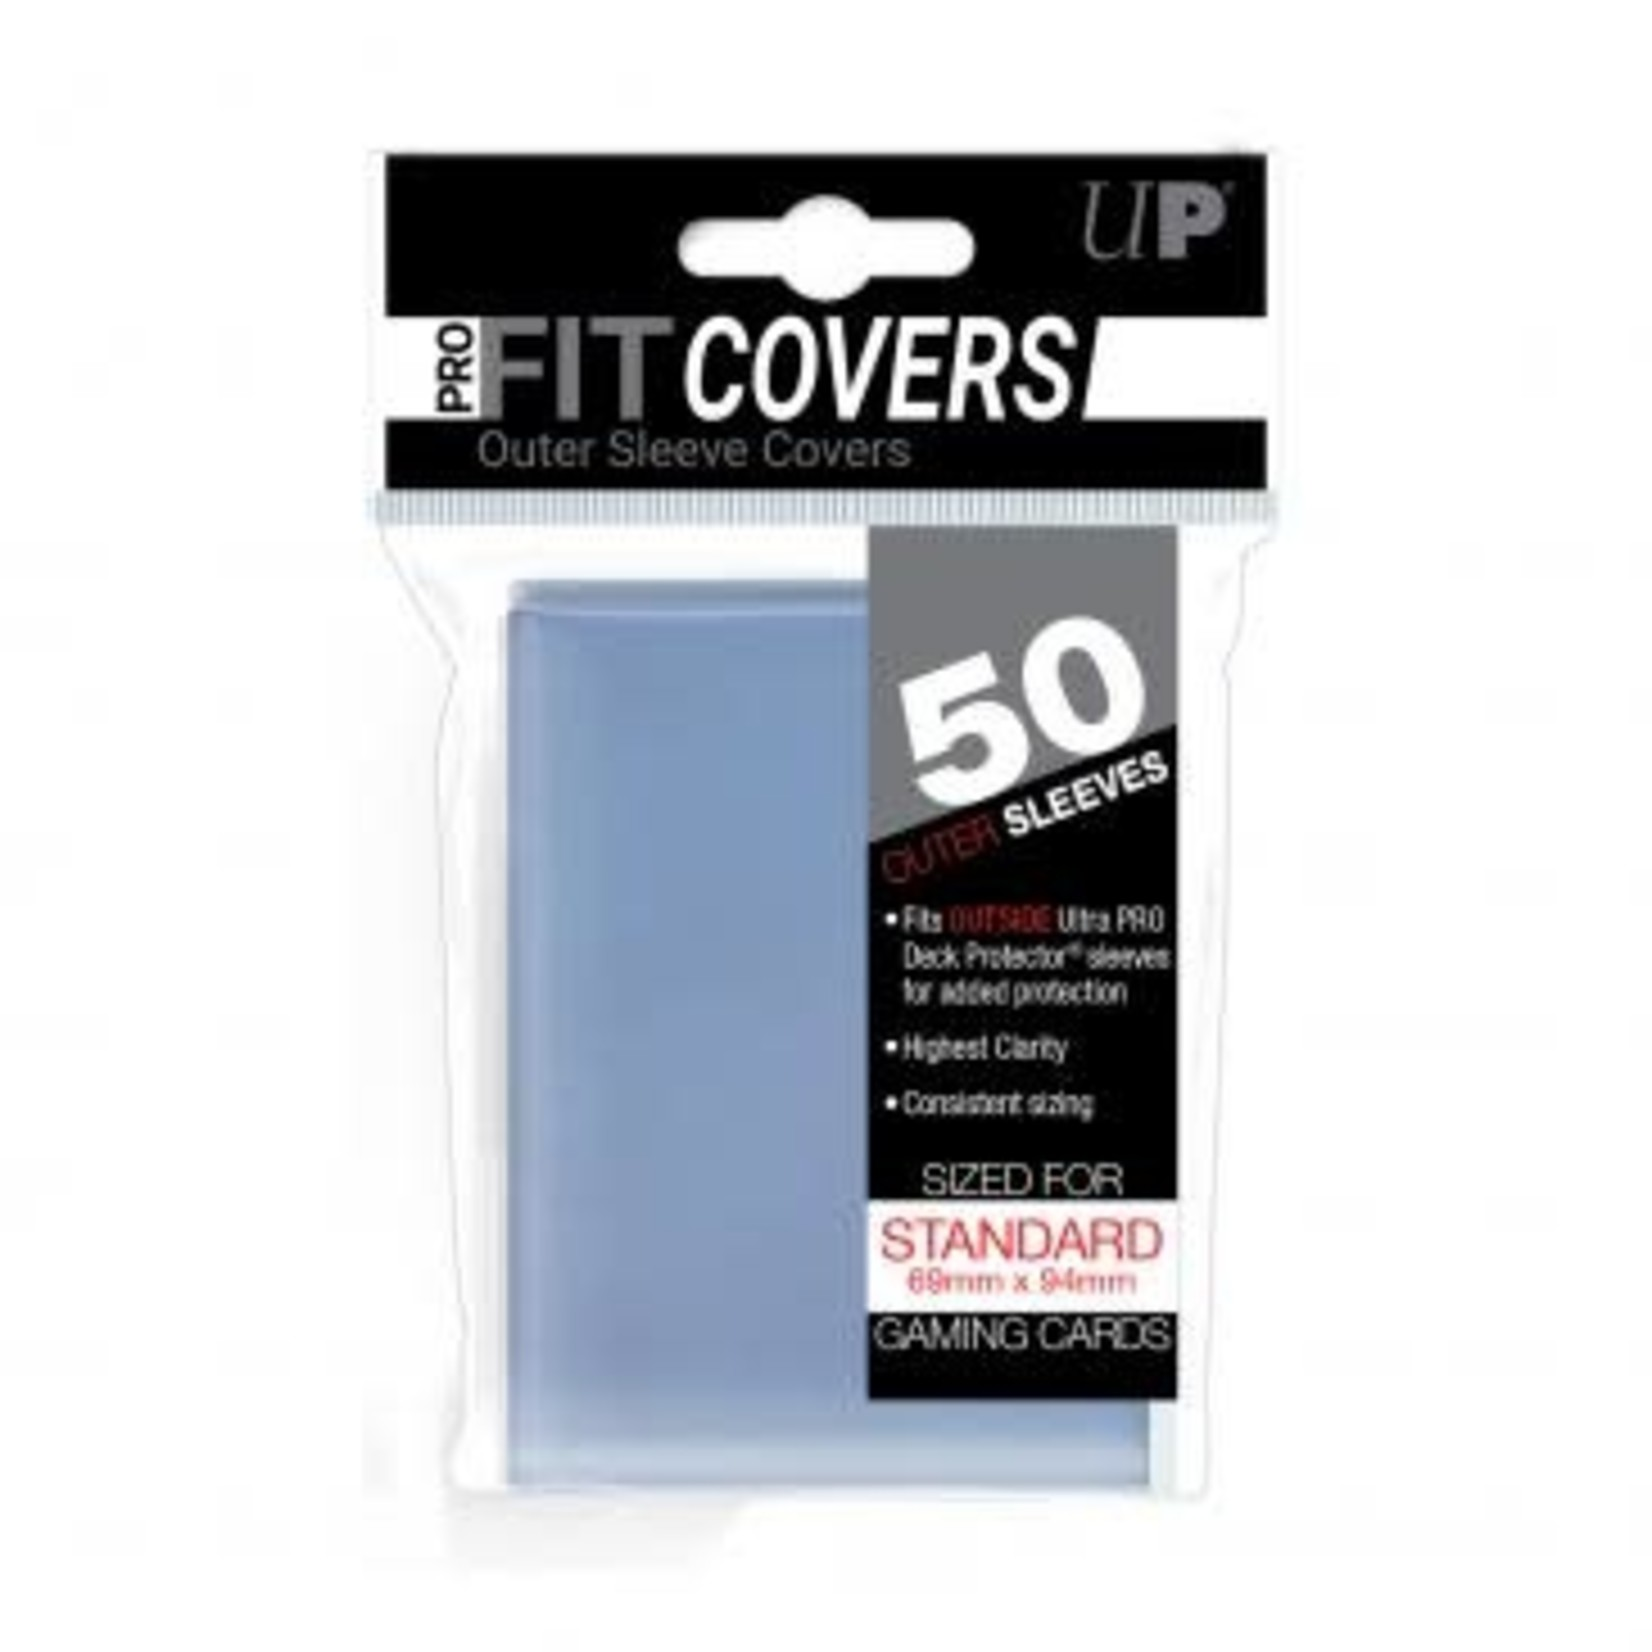 Ultra Pro DP Sleeve Covers (UP)